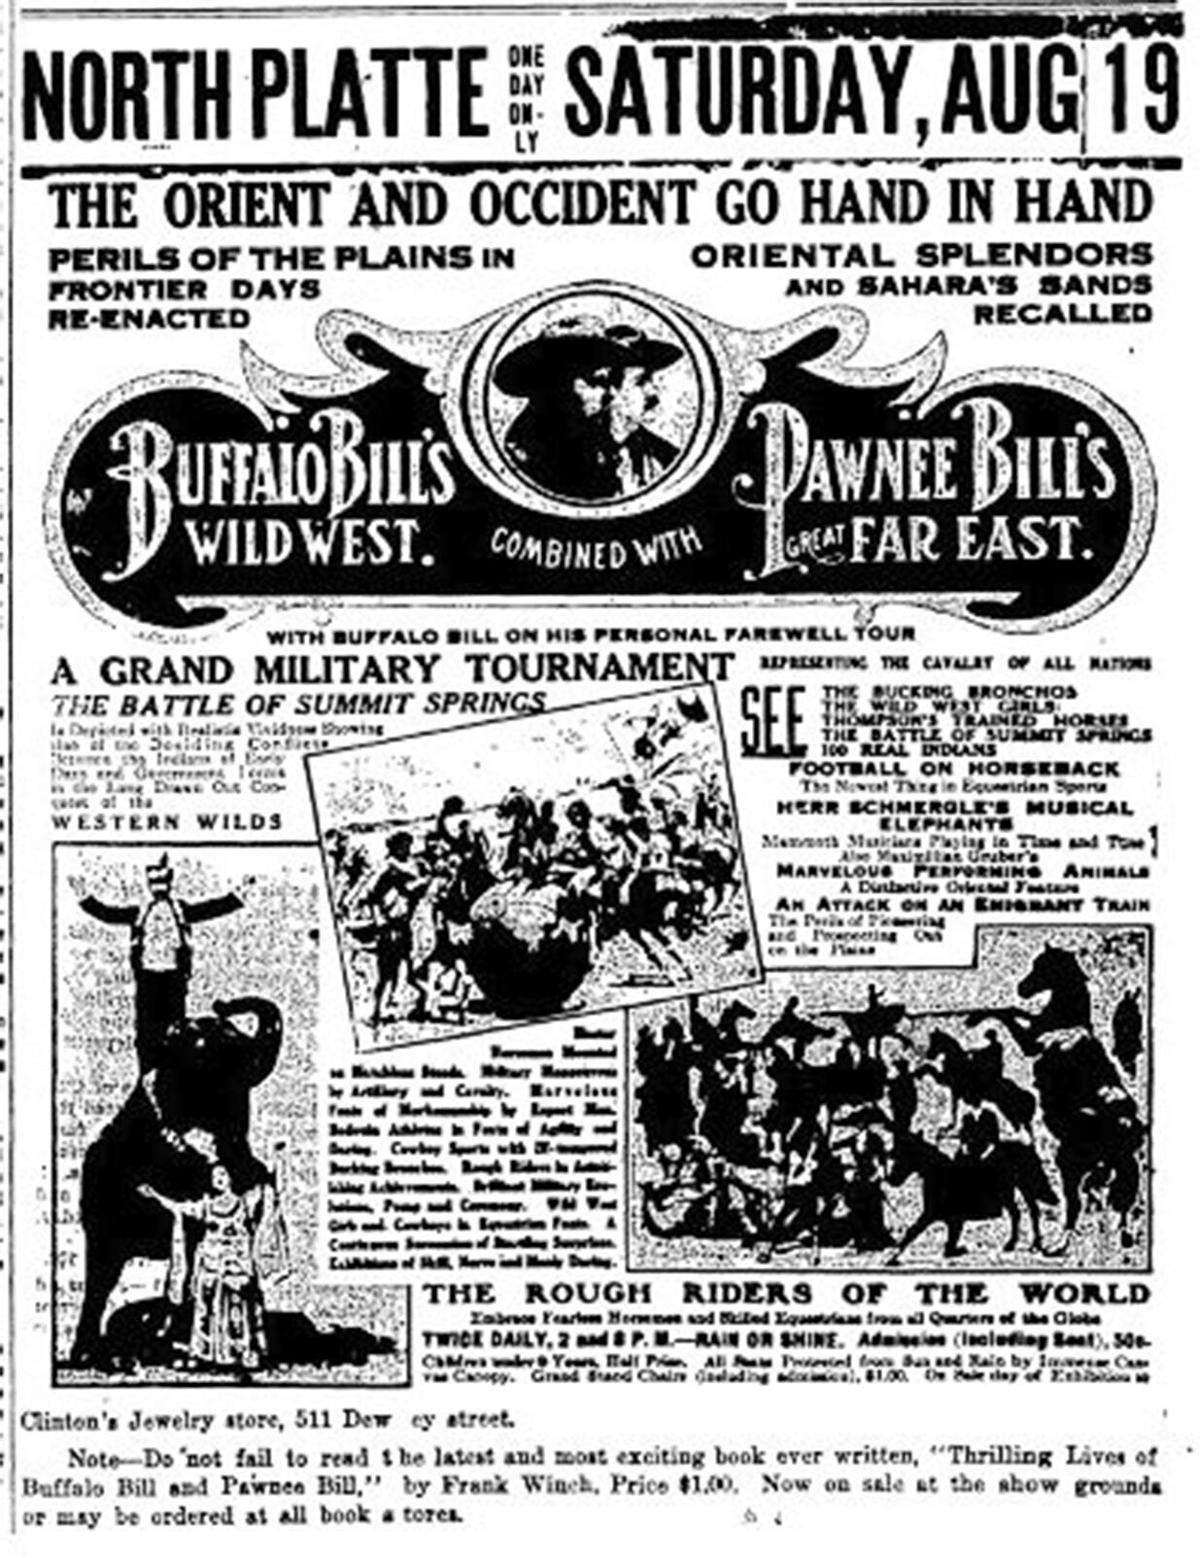 Ad for Wild West Show in NP, NPT, 8-10-1911, p. 6.JPG